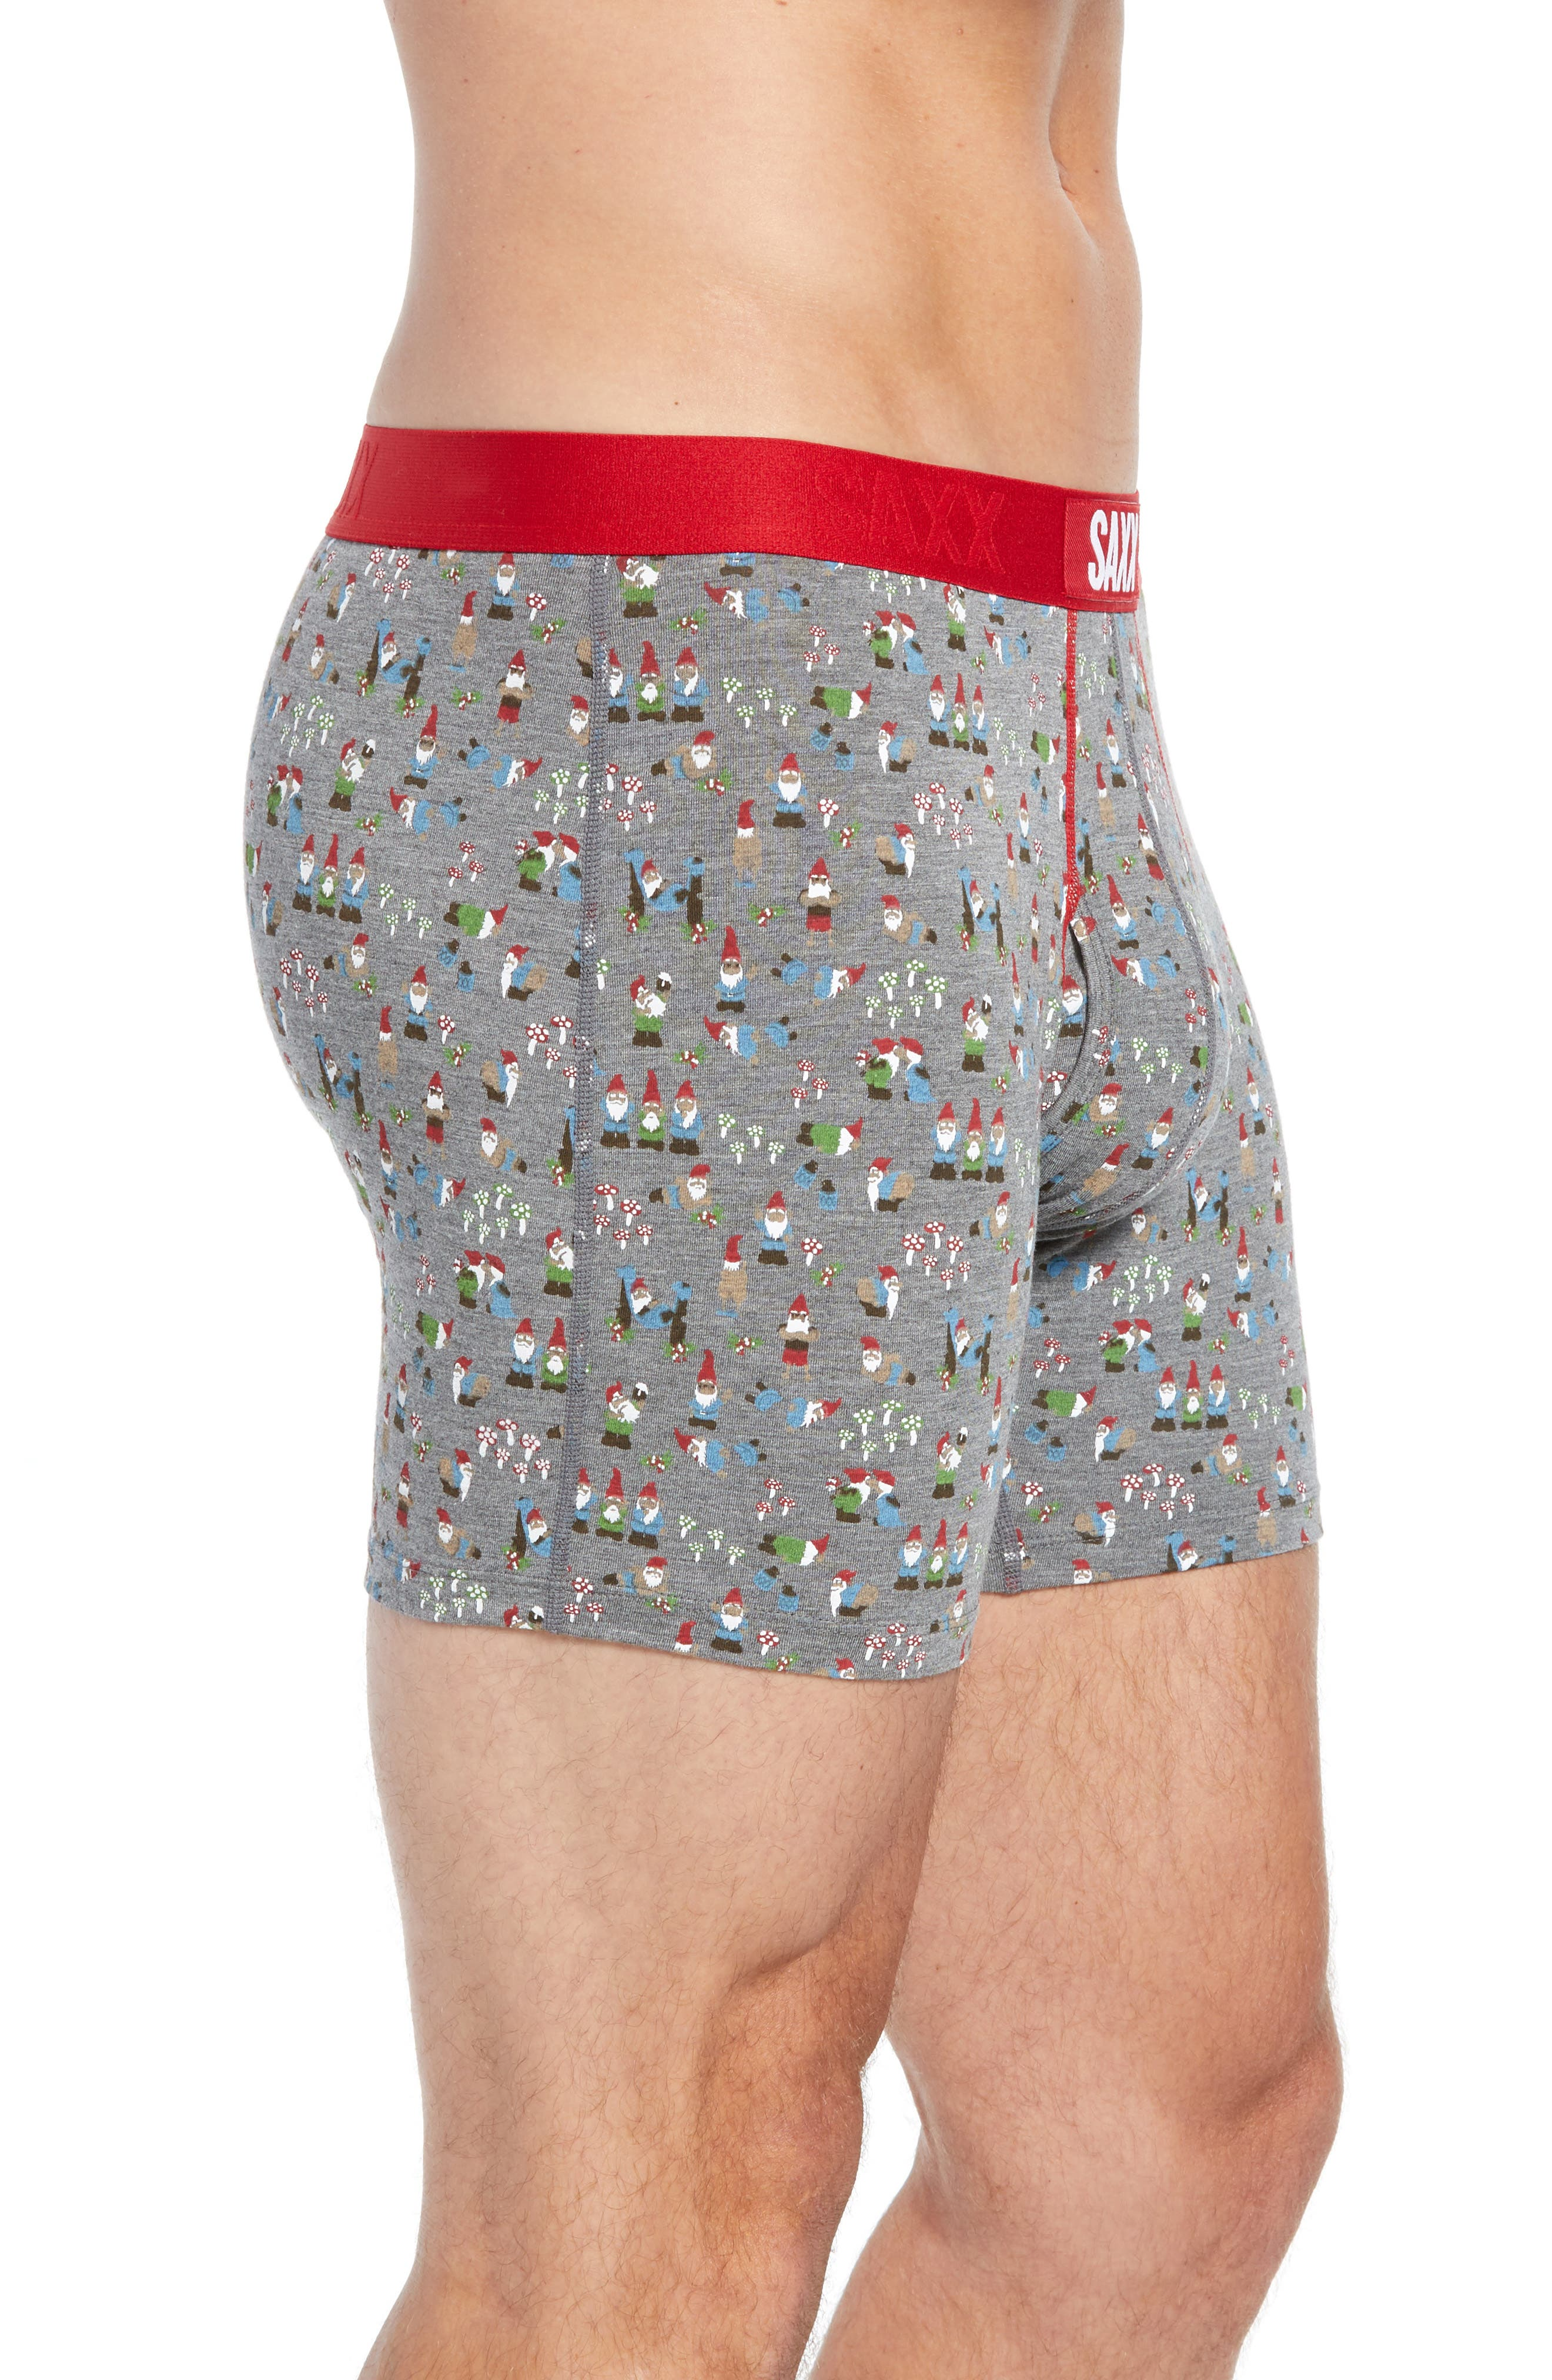 Ultra Naughty Gnomes Stretch Boxer Briefs,                             Alternate thumbnail 3, color,                             NAUGHTY GNOMES